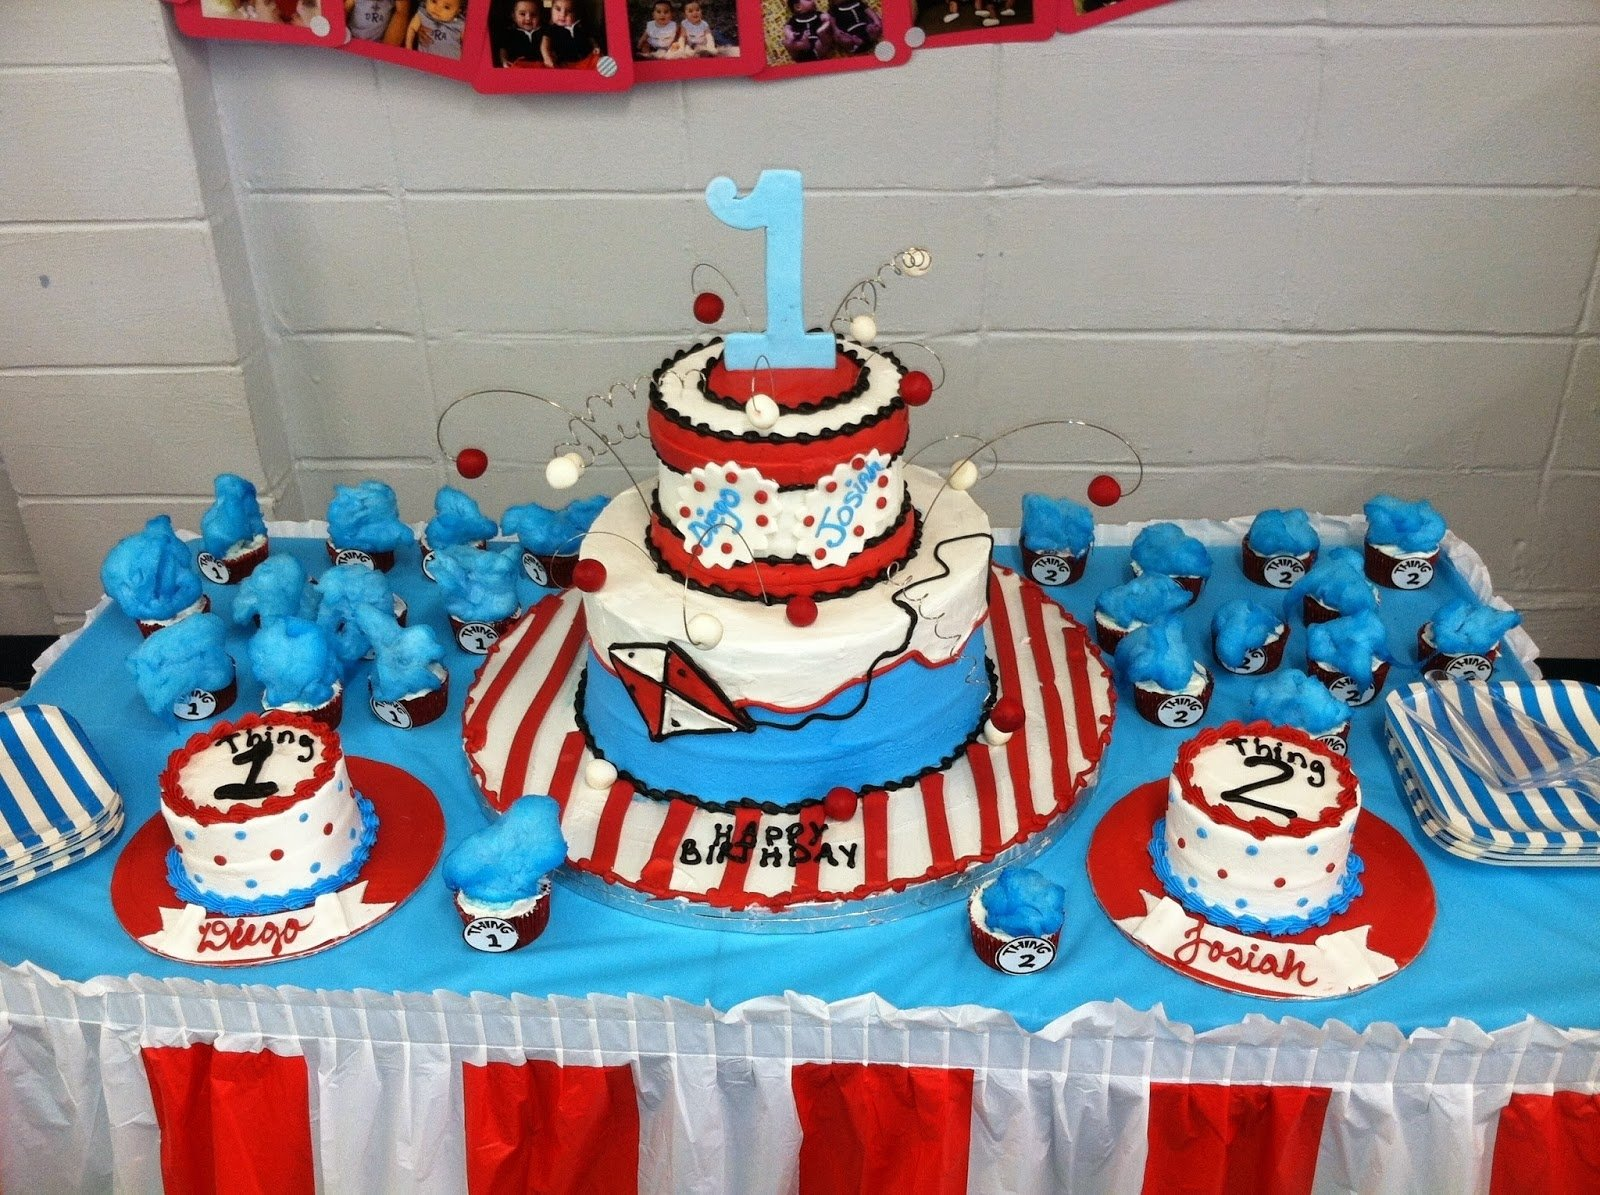 10 Trendy Thing 1 And Thing 2 Party Ideas nola parties and playdates thing one and thing two party 4 2020